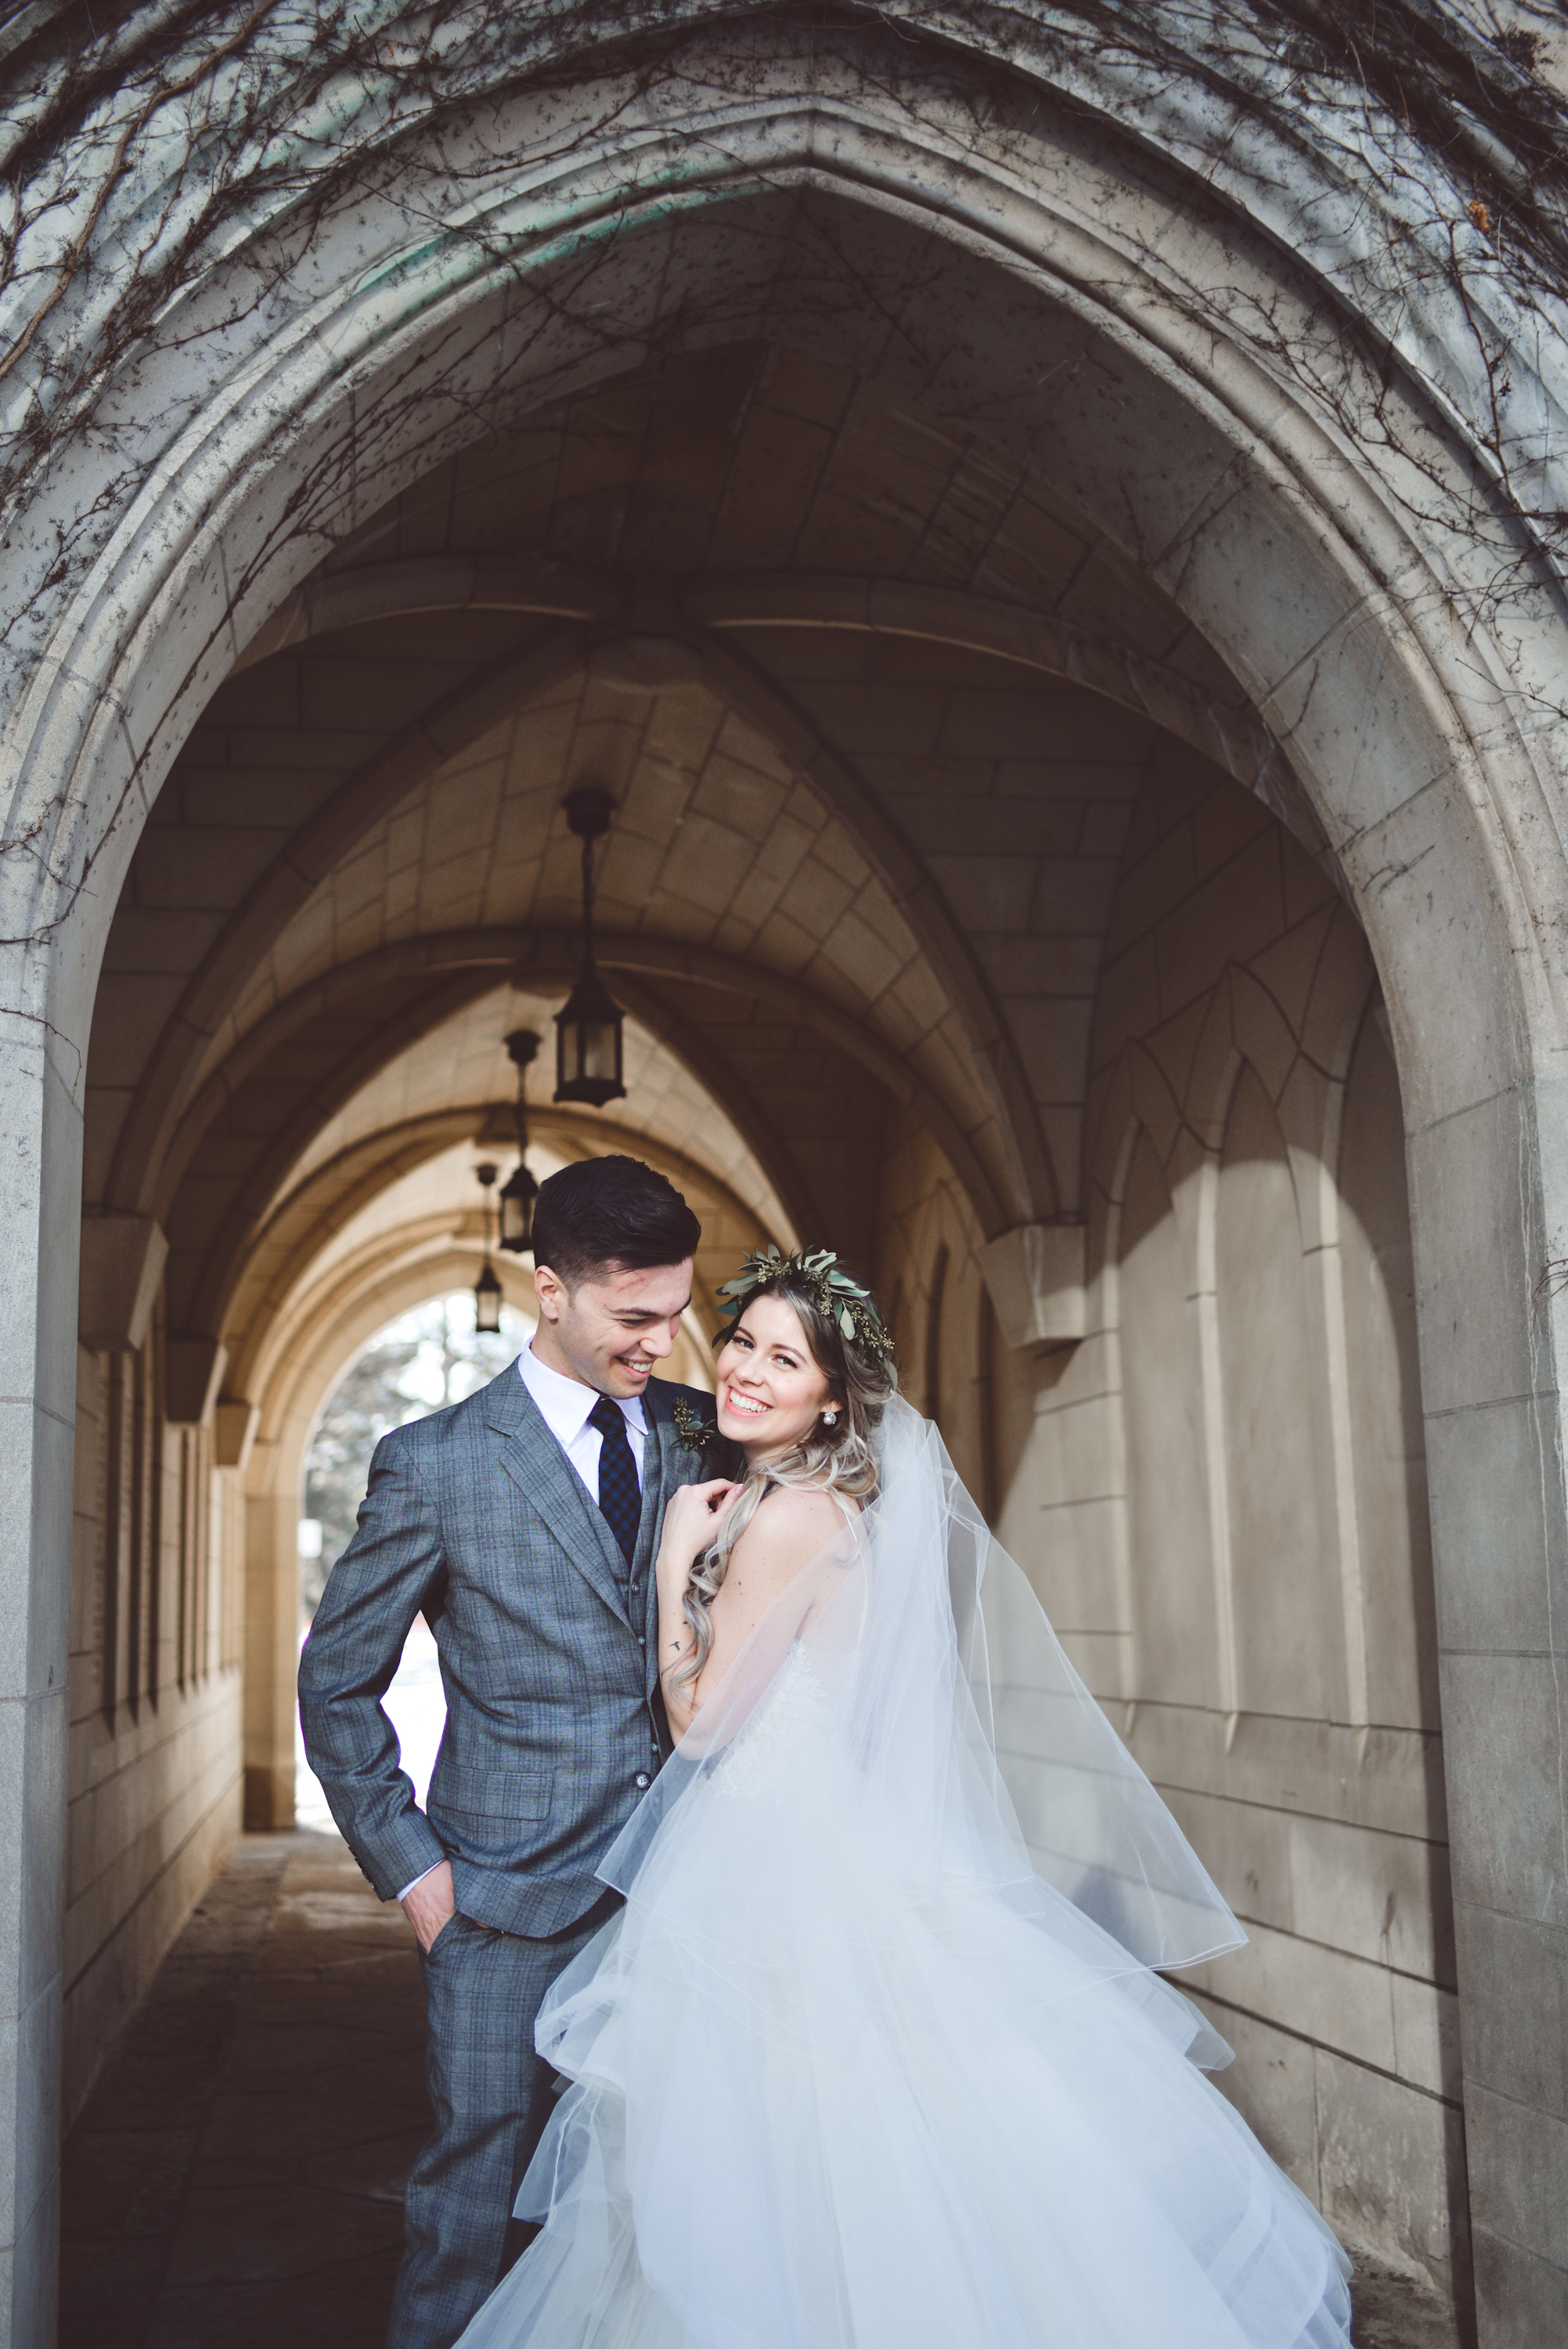 N + R - Bride + Groom-3118.jpg